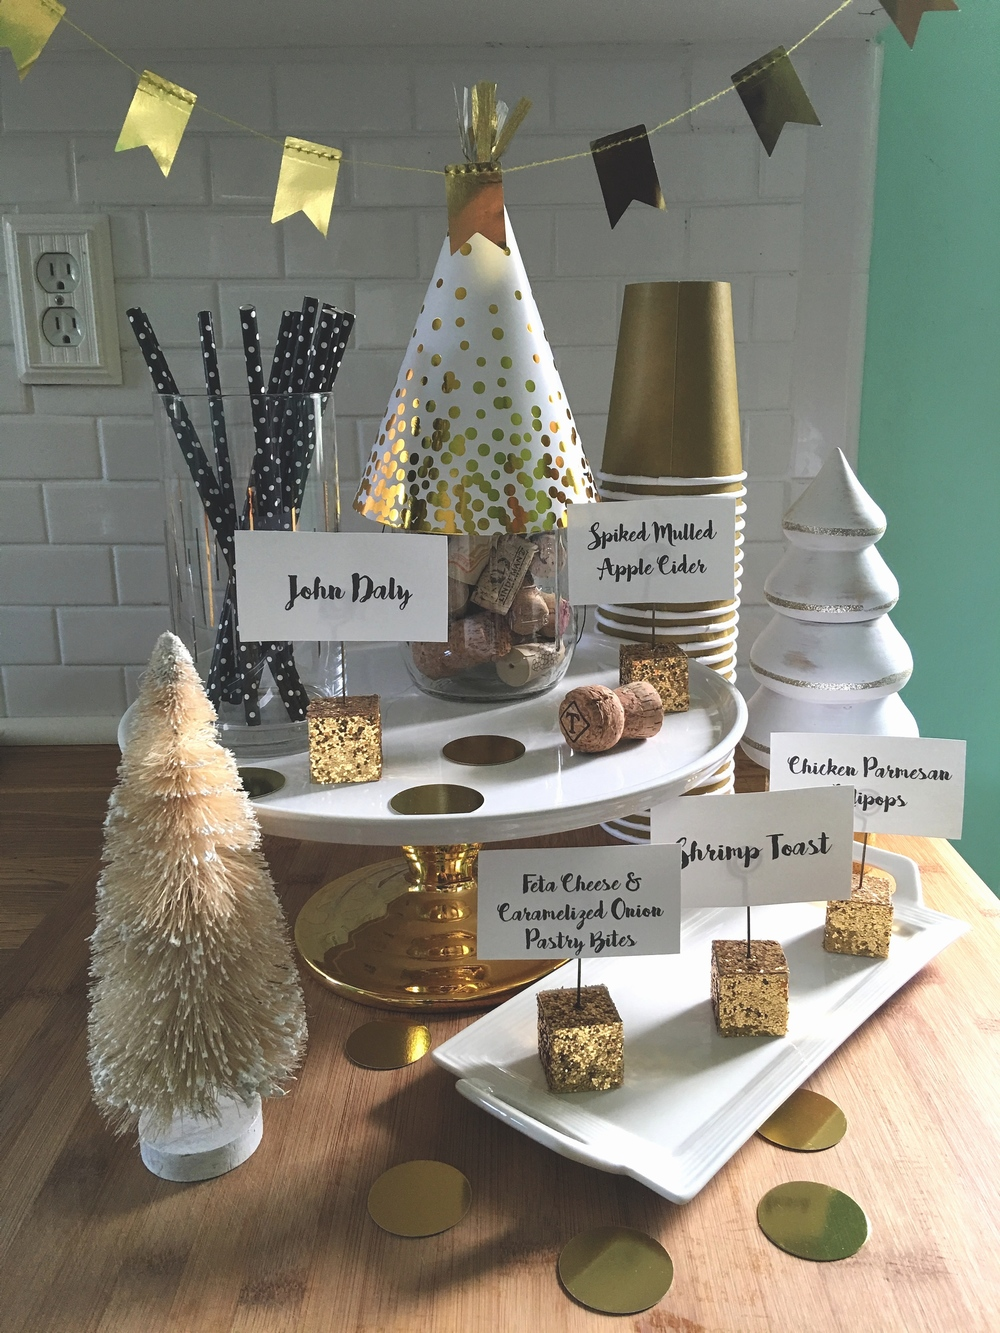 I had decided that the color palette was gold, black, and white, so these are the colors I looked for in each of the decor items chosen. I was lucky to have a 20% off coupon for Target, so this is where I picked up garland, confetti, party hats, and the paper straws. I found an amazing cake stand with a gold base and several rectangular, white platters at Homegoods. At Party City, I purchased the gold paper cups and the gold glittered place card holders to display the names of the batch cocktails and what each appetizer was.